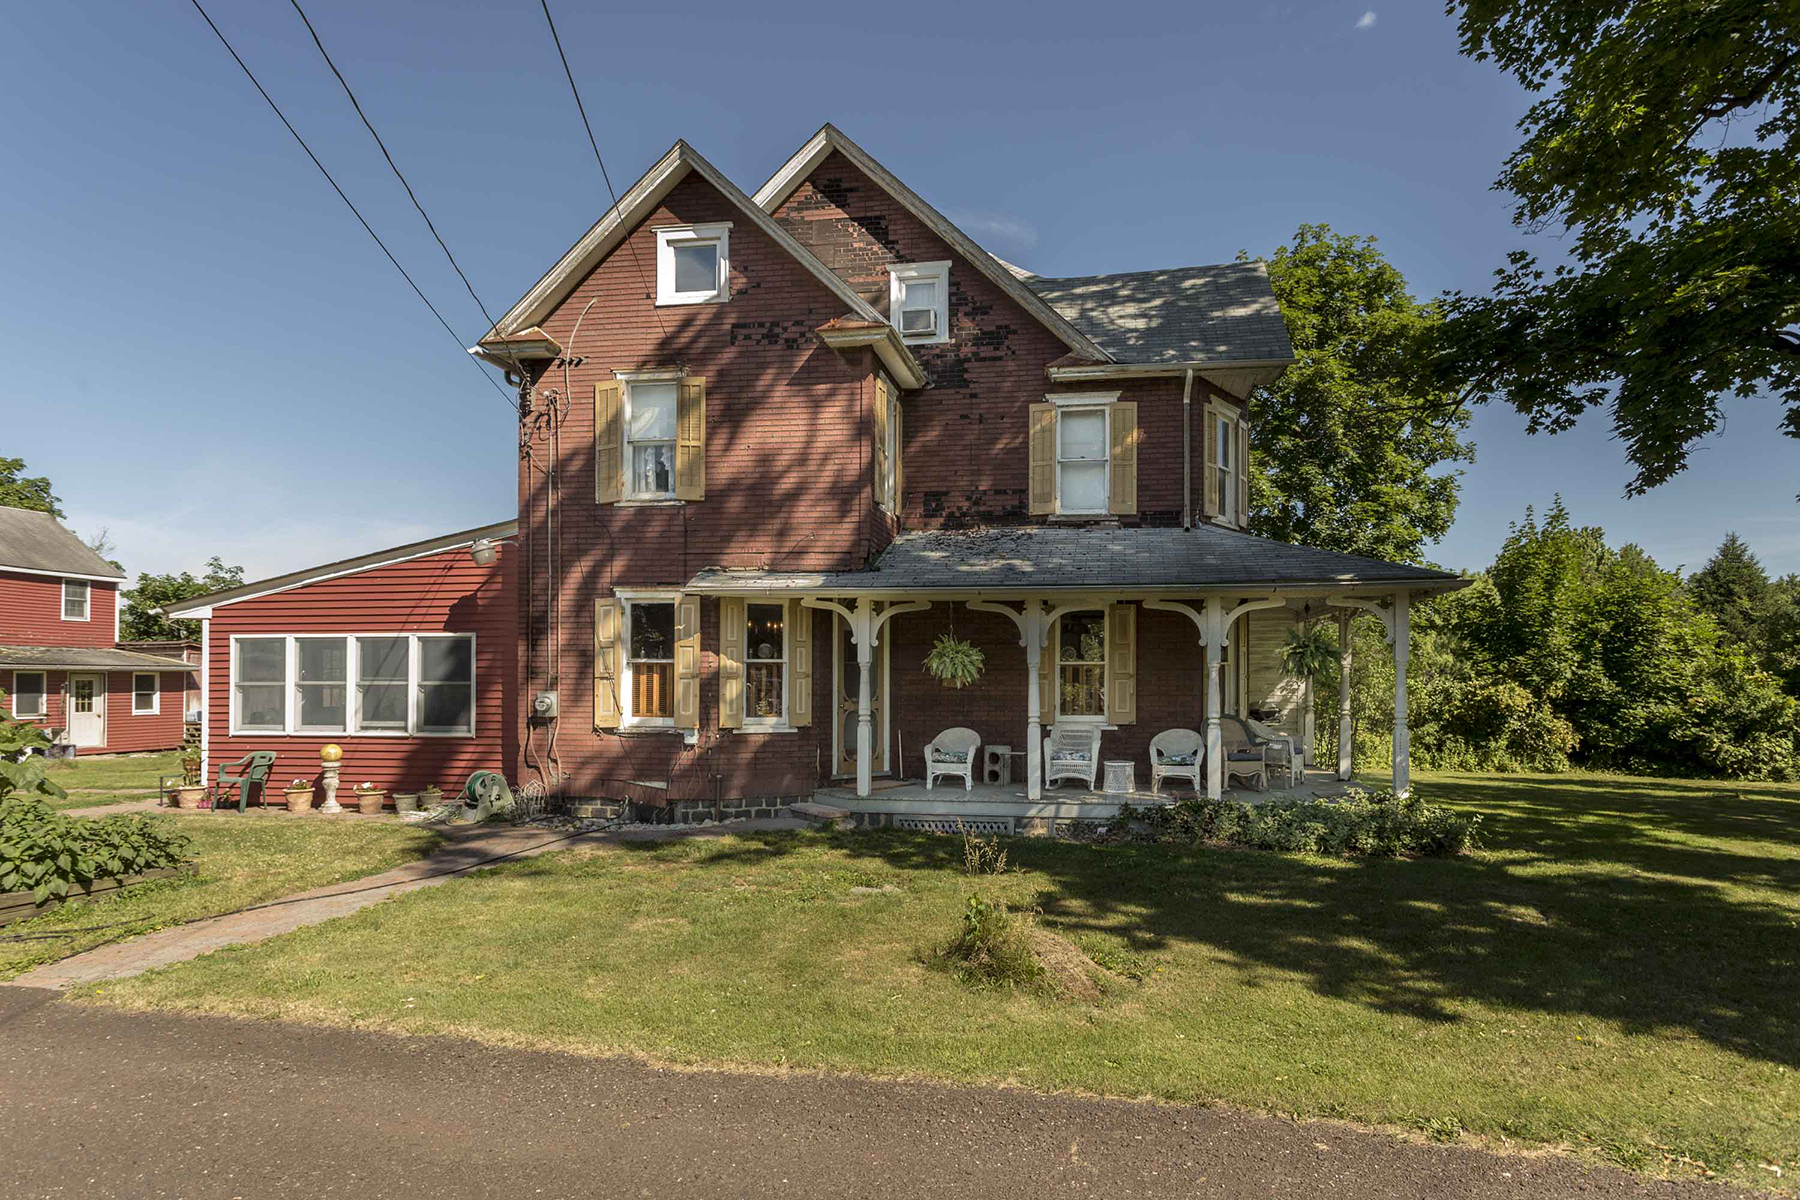 Single Family Home for Sale at Pipersville, PA 4948 Durham Rd Pipersville, Pennsylvania, 18947 United States